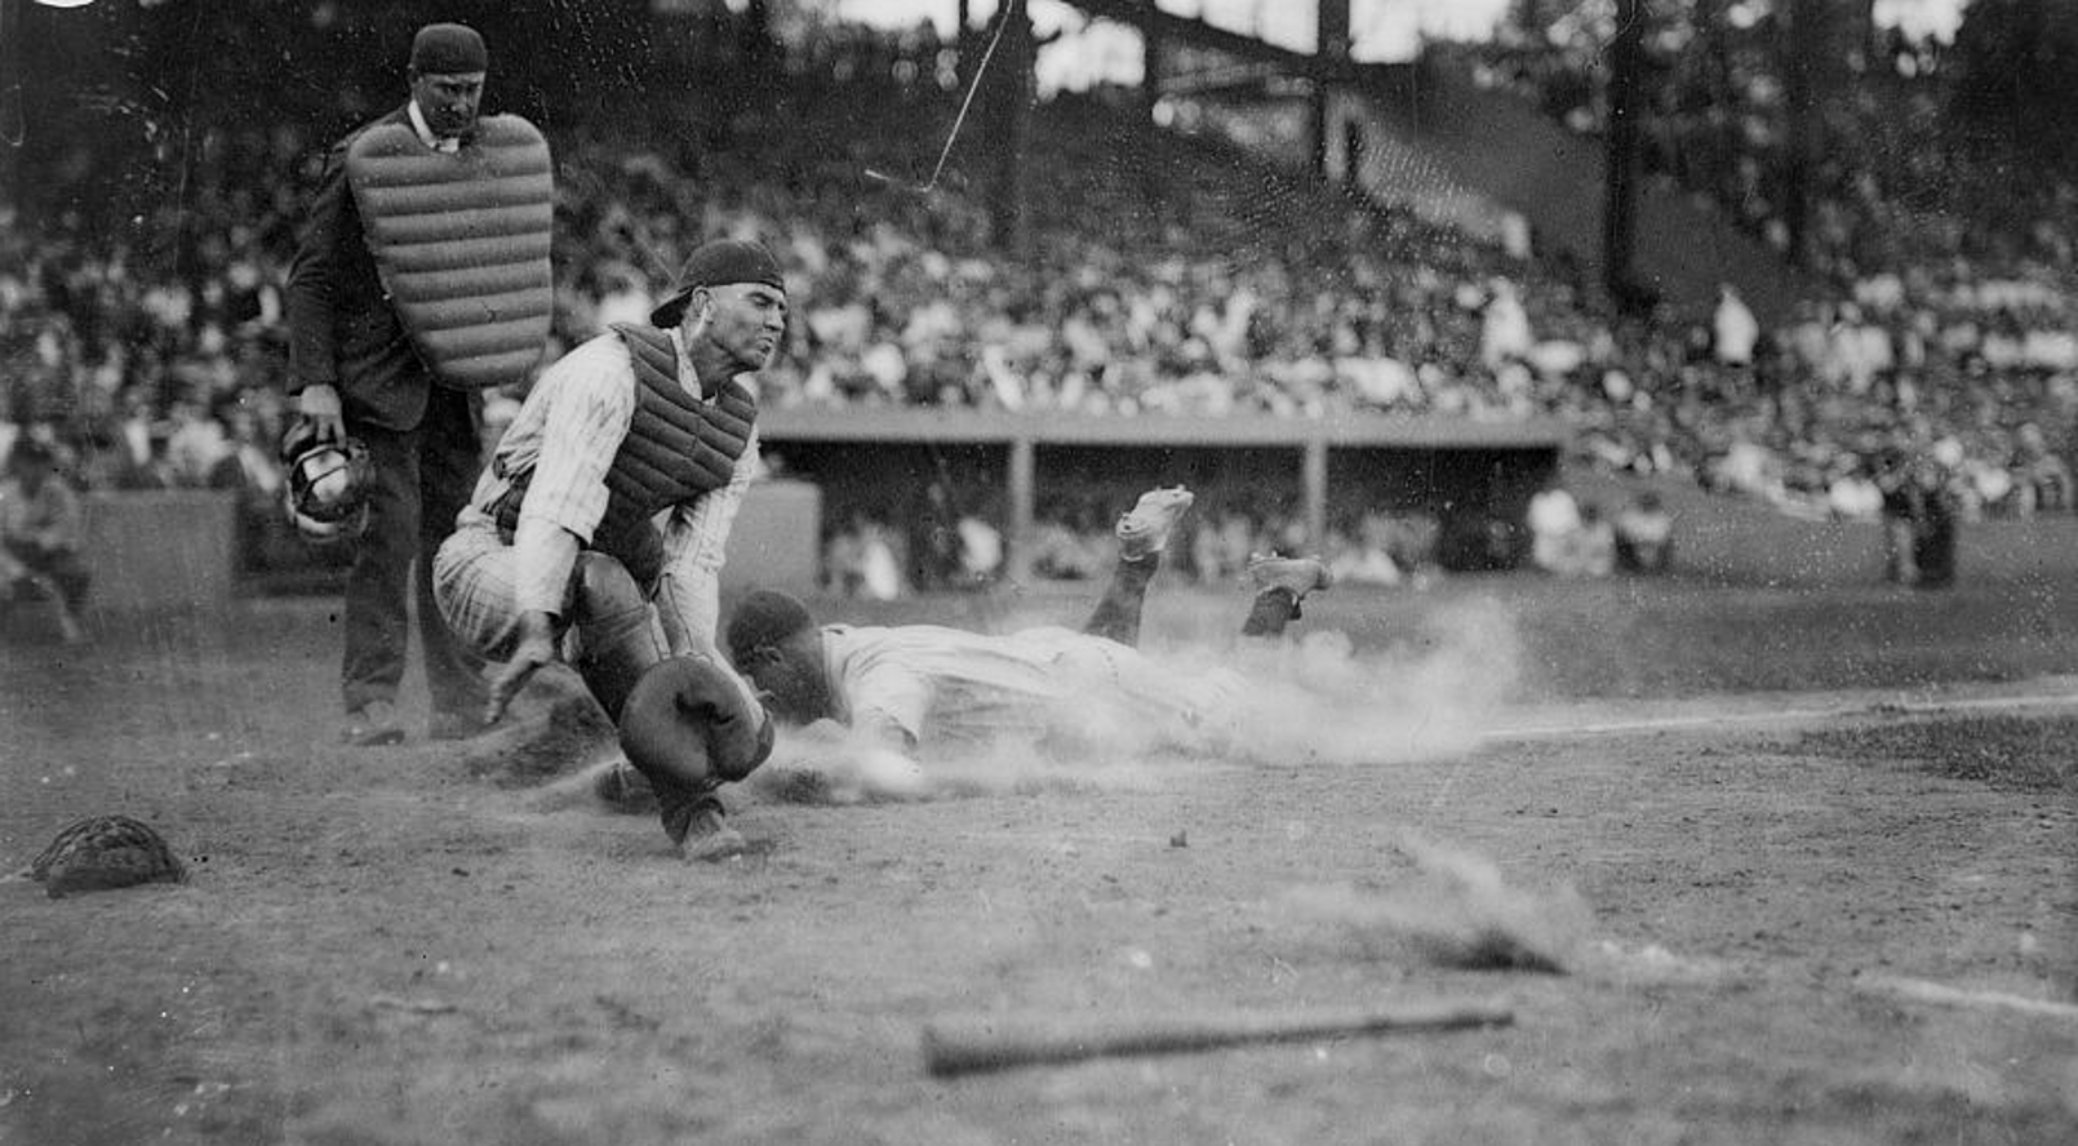 Lou Gehrig Beats The Throw Home